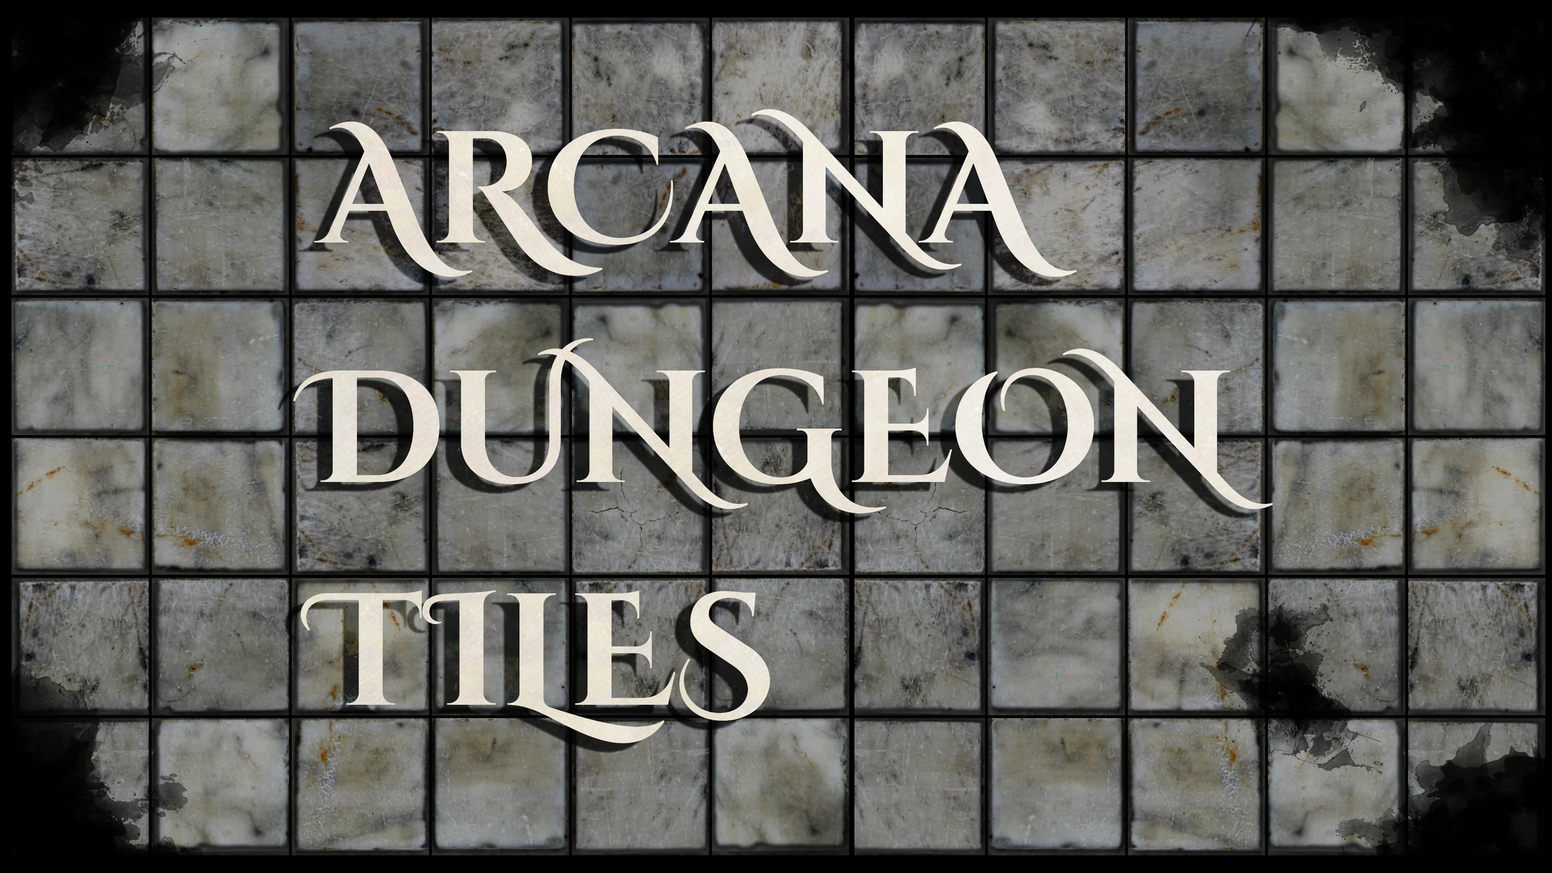 Detailed tiles to create infinite custom dungeons for any tabletop RPG!